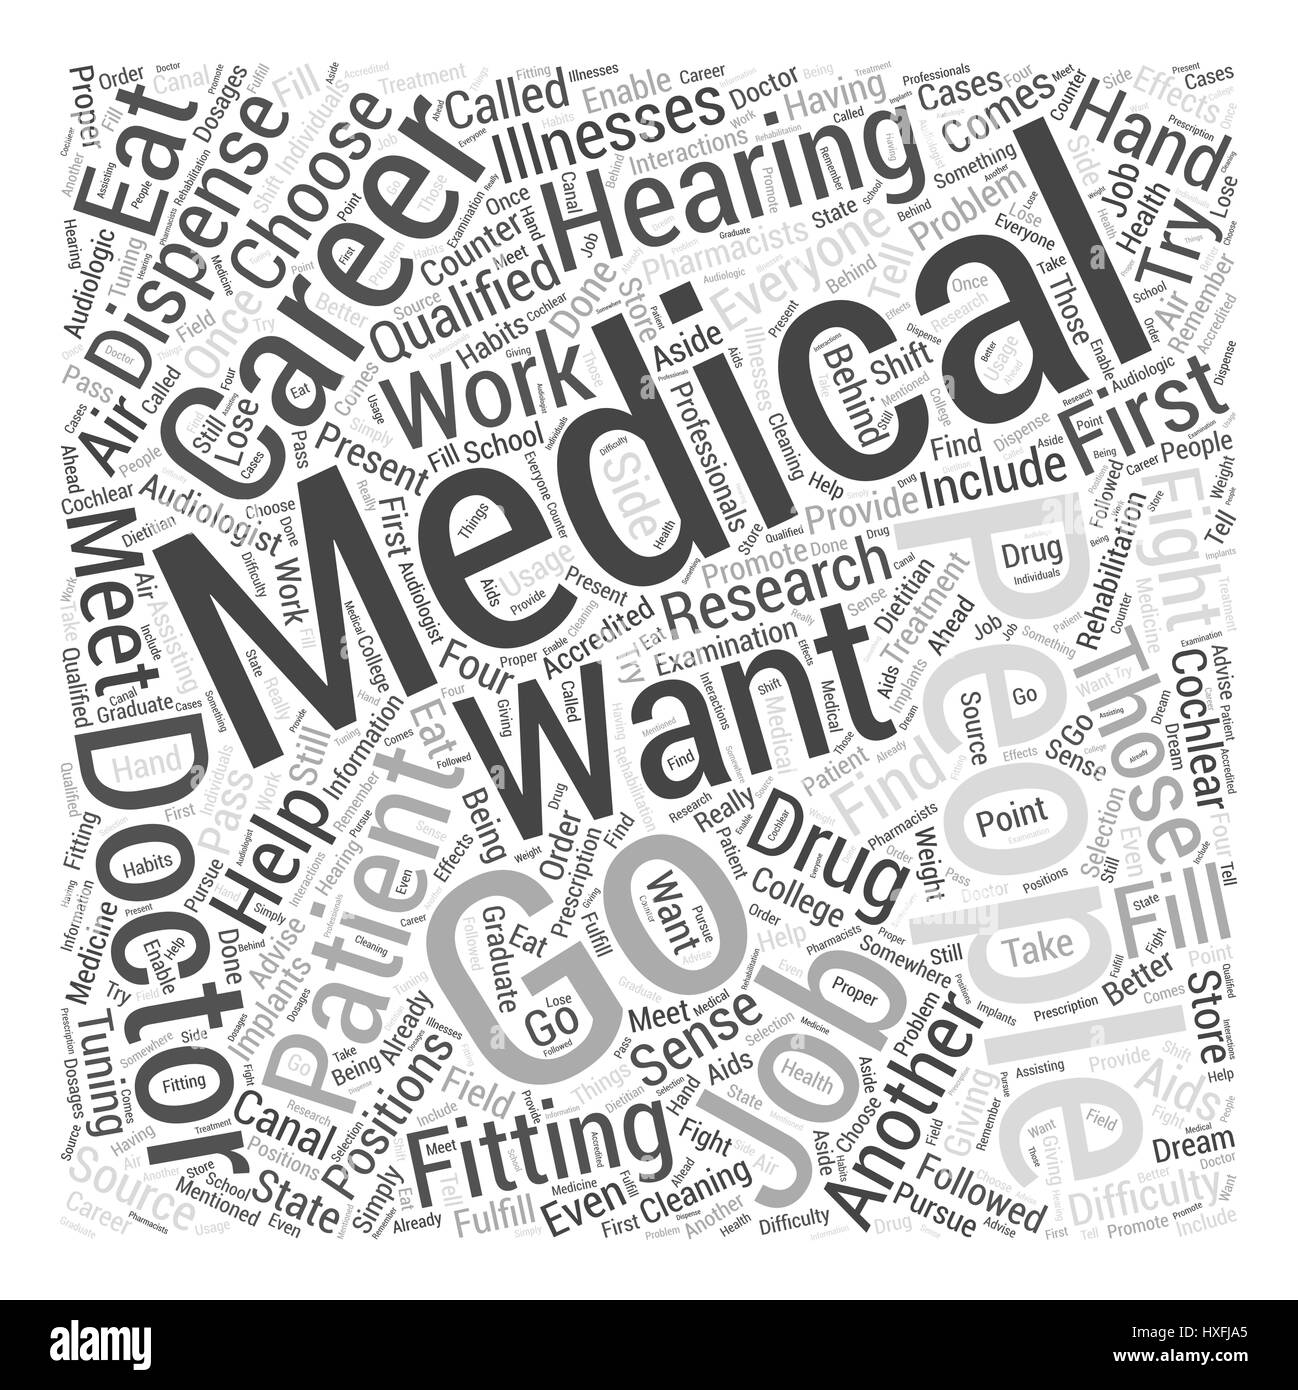 Medical Careers Word Cloud Concept - Stock Image